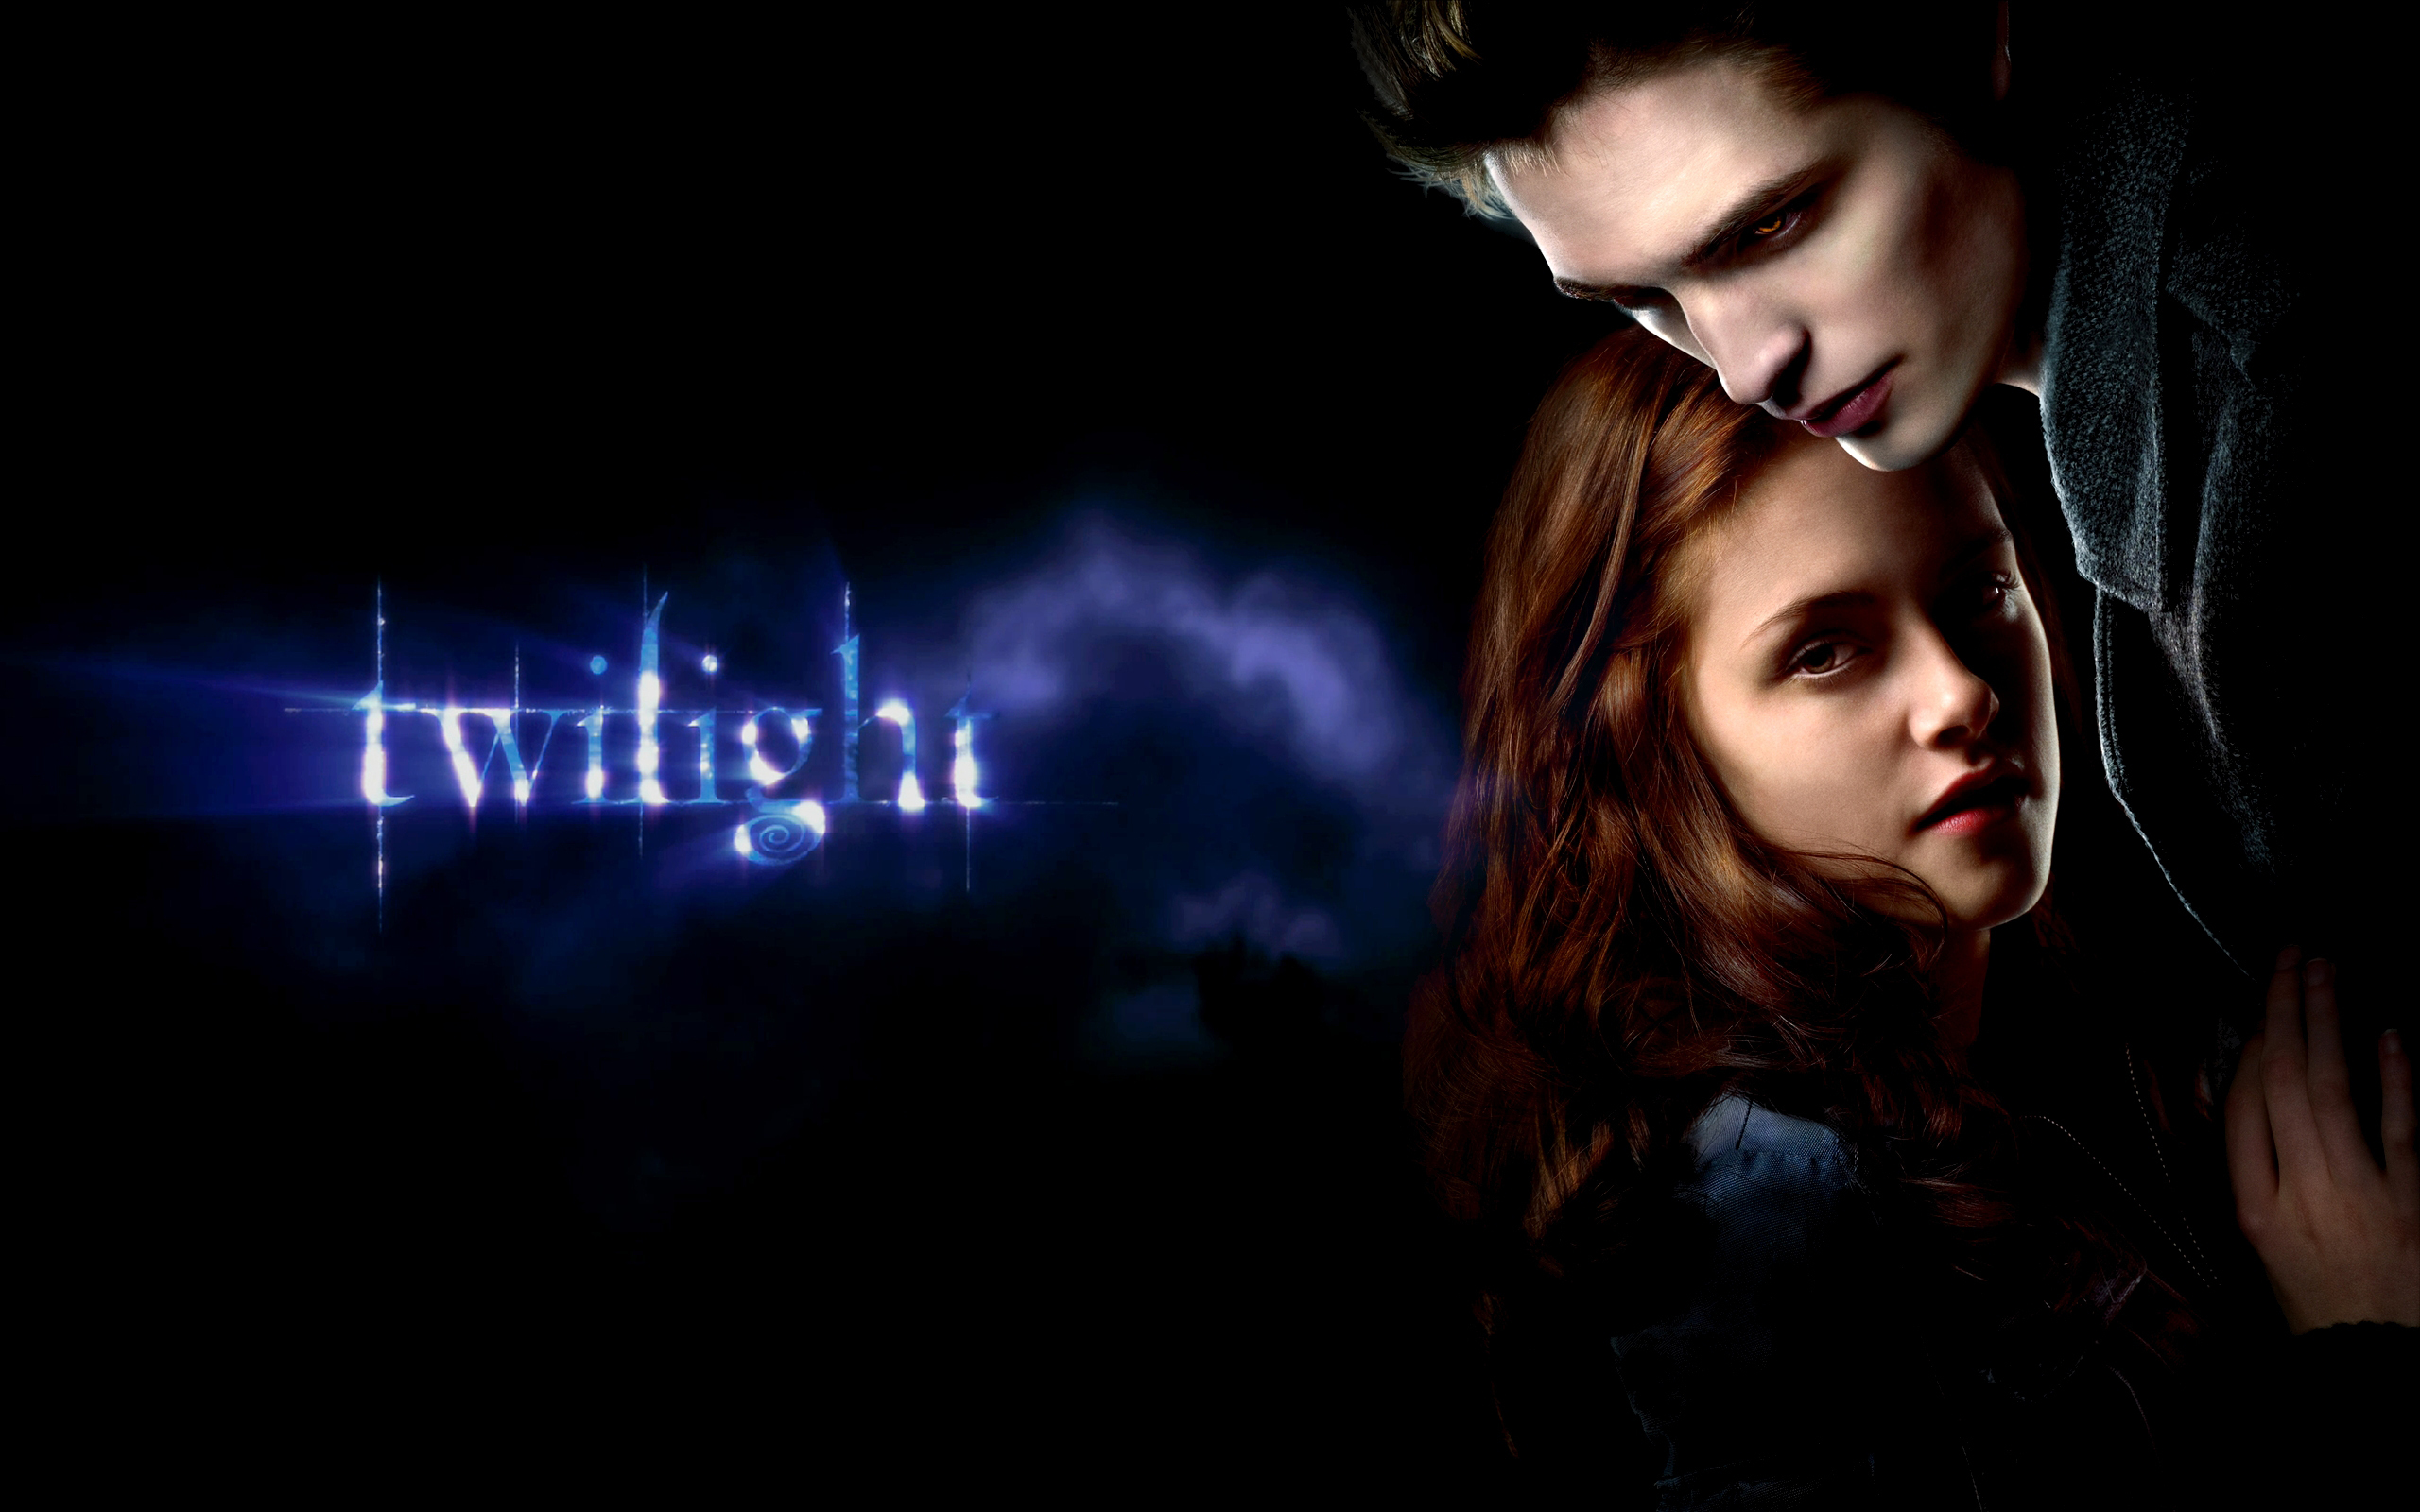 Twilight Love couple Wallpaper : 36 Twilight HD Wallpapers Backgrounds - Wallpaper Abyss